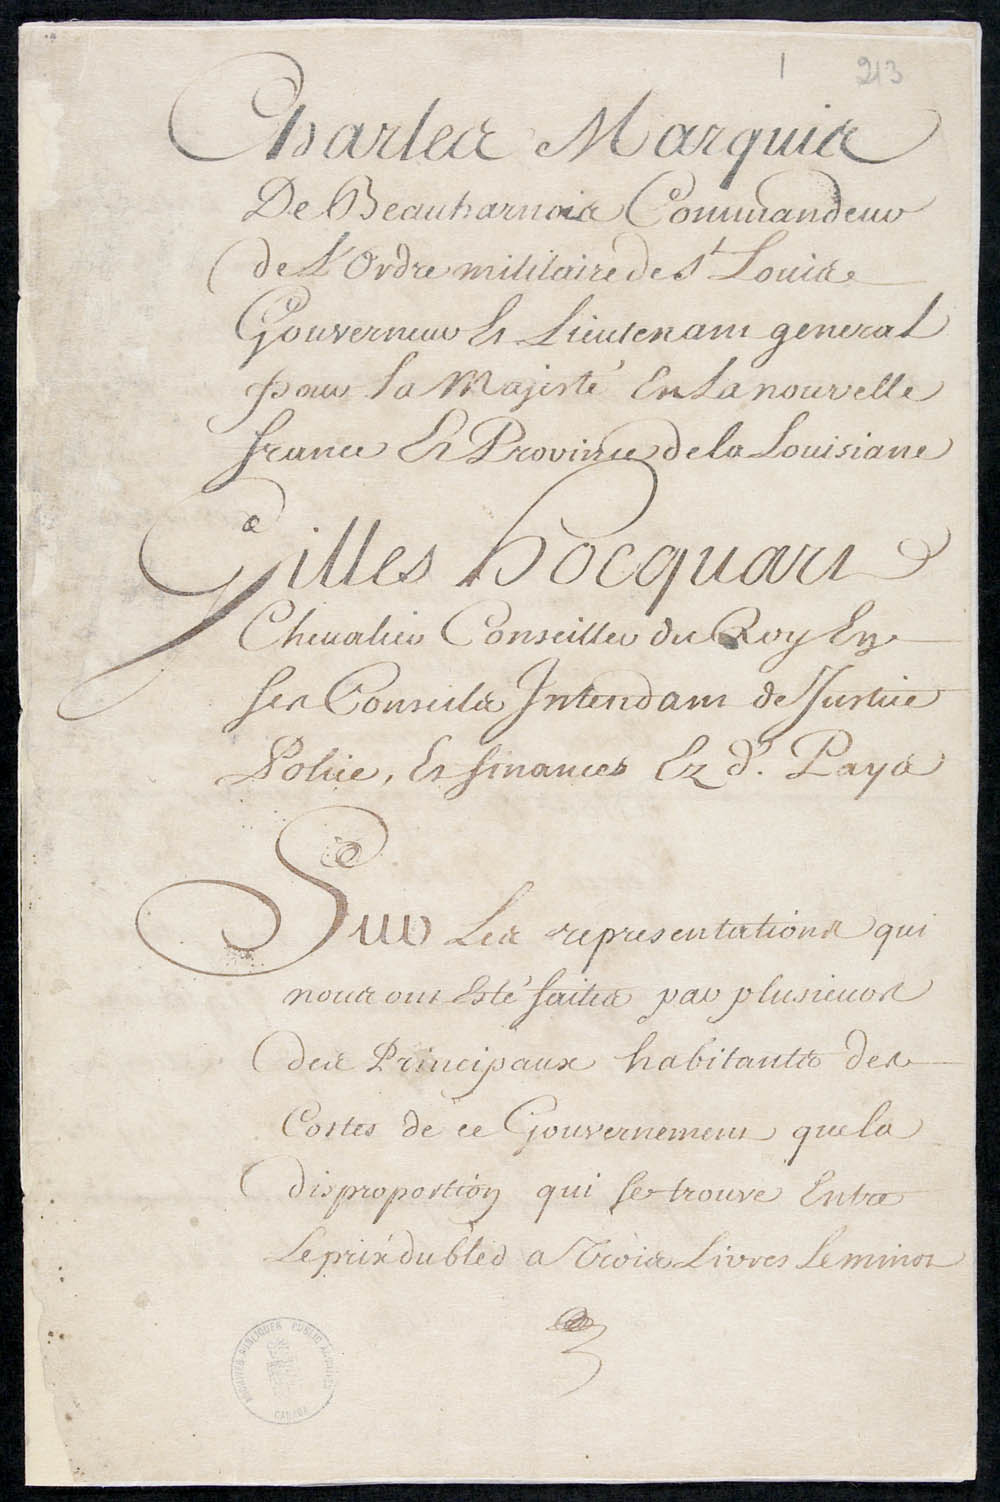 Ordinance from Charles de Beauharnois de La Boische, Governor of New France, and Gilles Hocquart, Intendant, regulating the price of wheat and flour, March 6, 1738, CA ANC MG8-A6 1